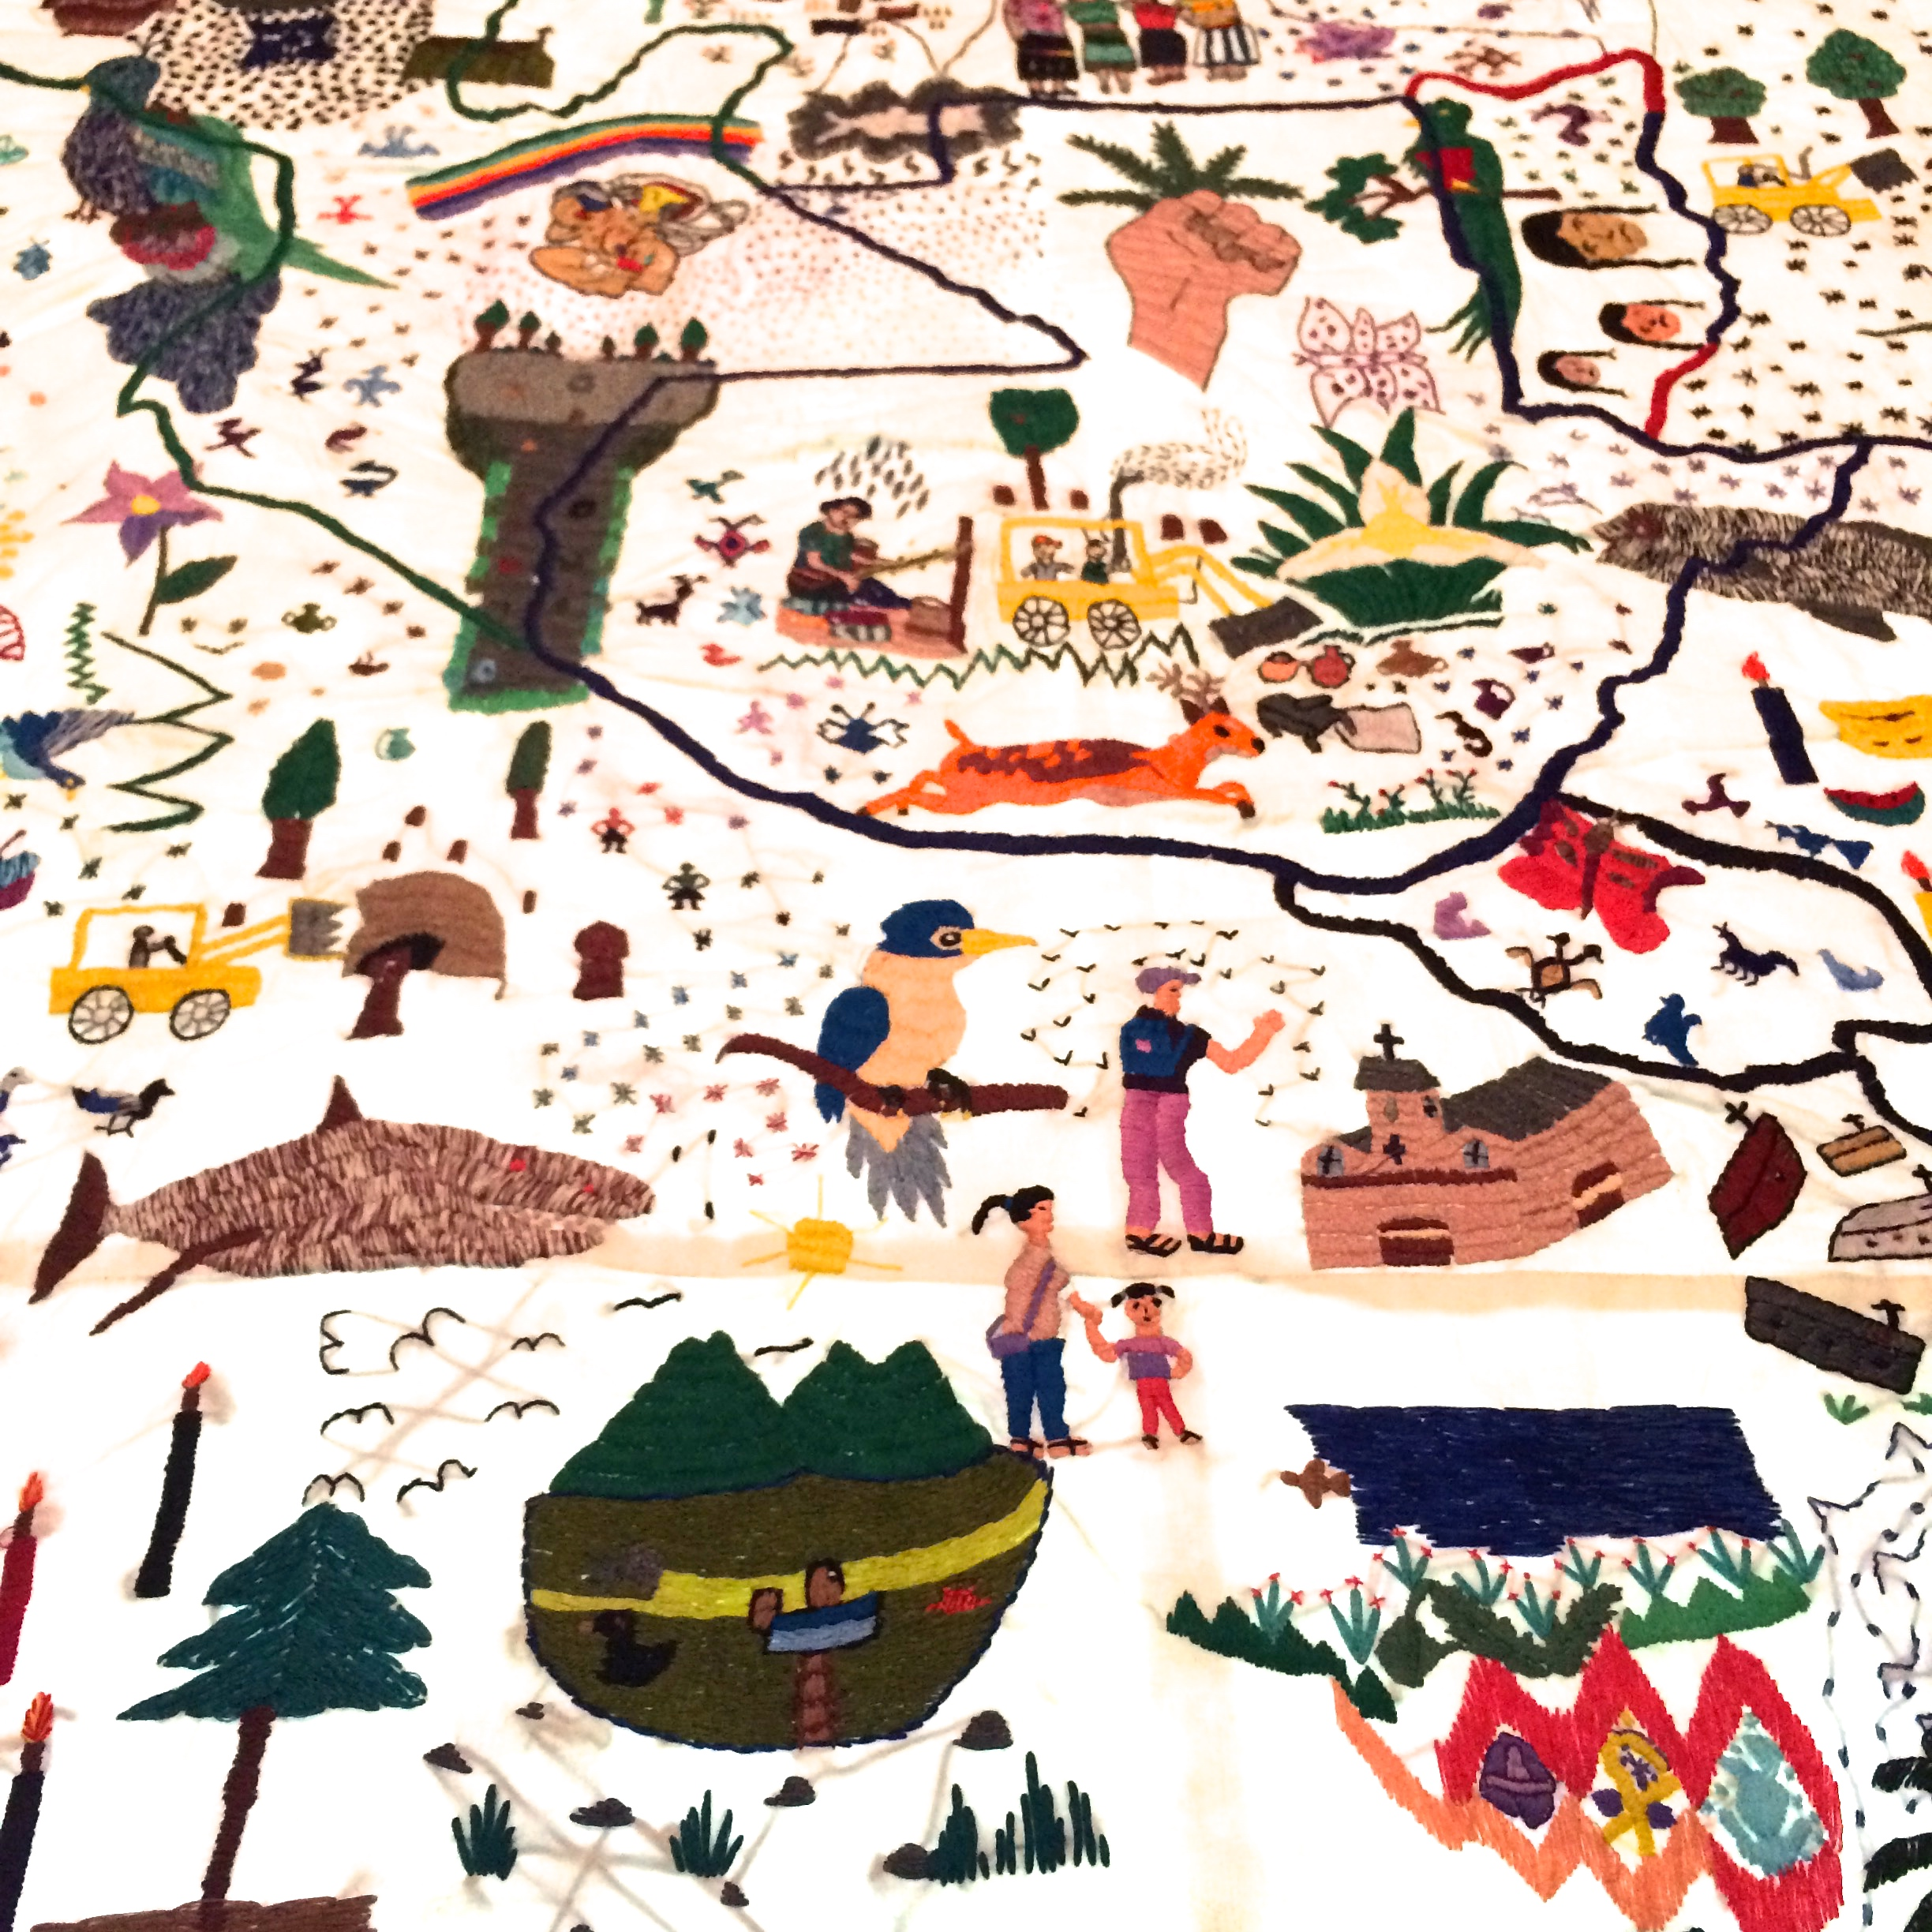 A closely cropped detail of Teresa Margolles, Nkijak b'ey Pa jun utz laj K'aslemal / Opening Paths to Social Justice , 2015. Embroidery on fabric permeated with blood from the body of a woman assassinated in Guatemala City. Created with participation of Mayan women members of the Asociación de Desarrollo de la Mujer K'ak'a Na (ADEMKAN): Bonifacia Cocom, Lucy López, Yuri López, Silvia Menchù, Claudia Nimacachi, Lucrecia Puac, Estela Tax, and Josefina Tuy. 78 3/4 x 18 3/4 in.